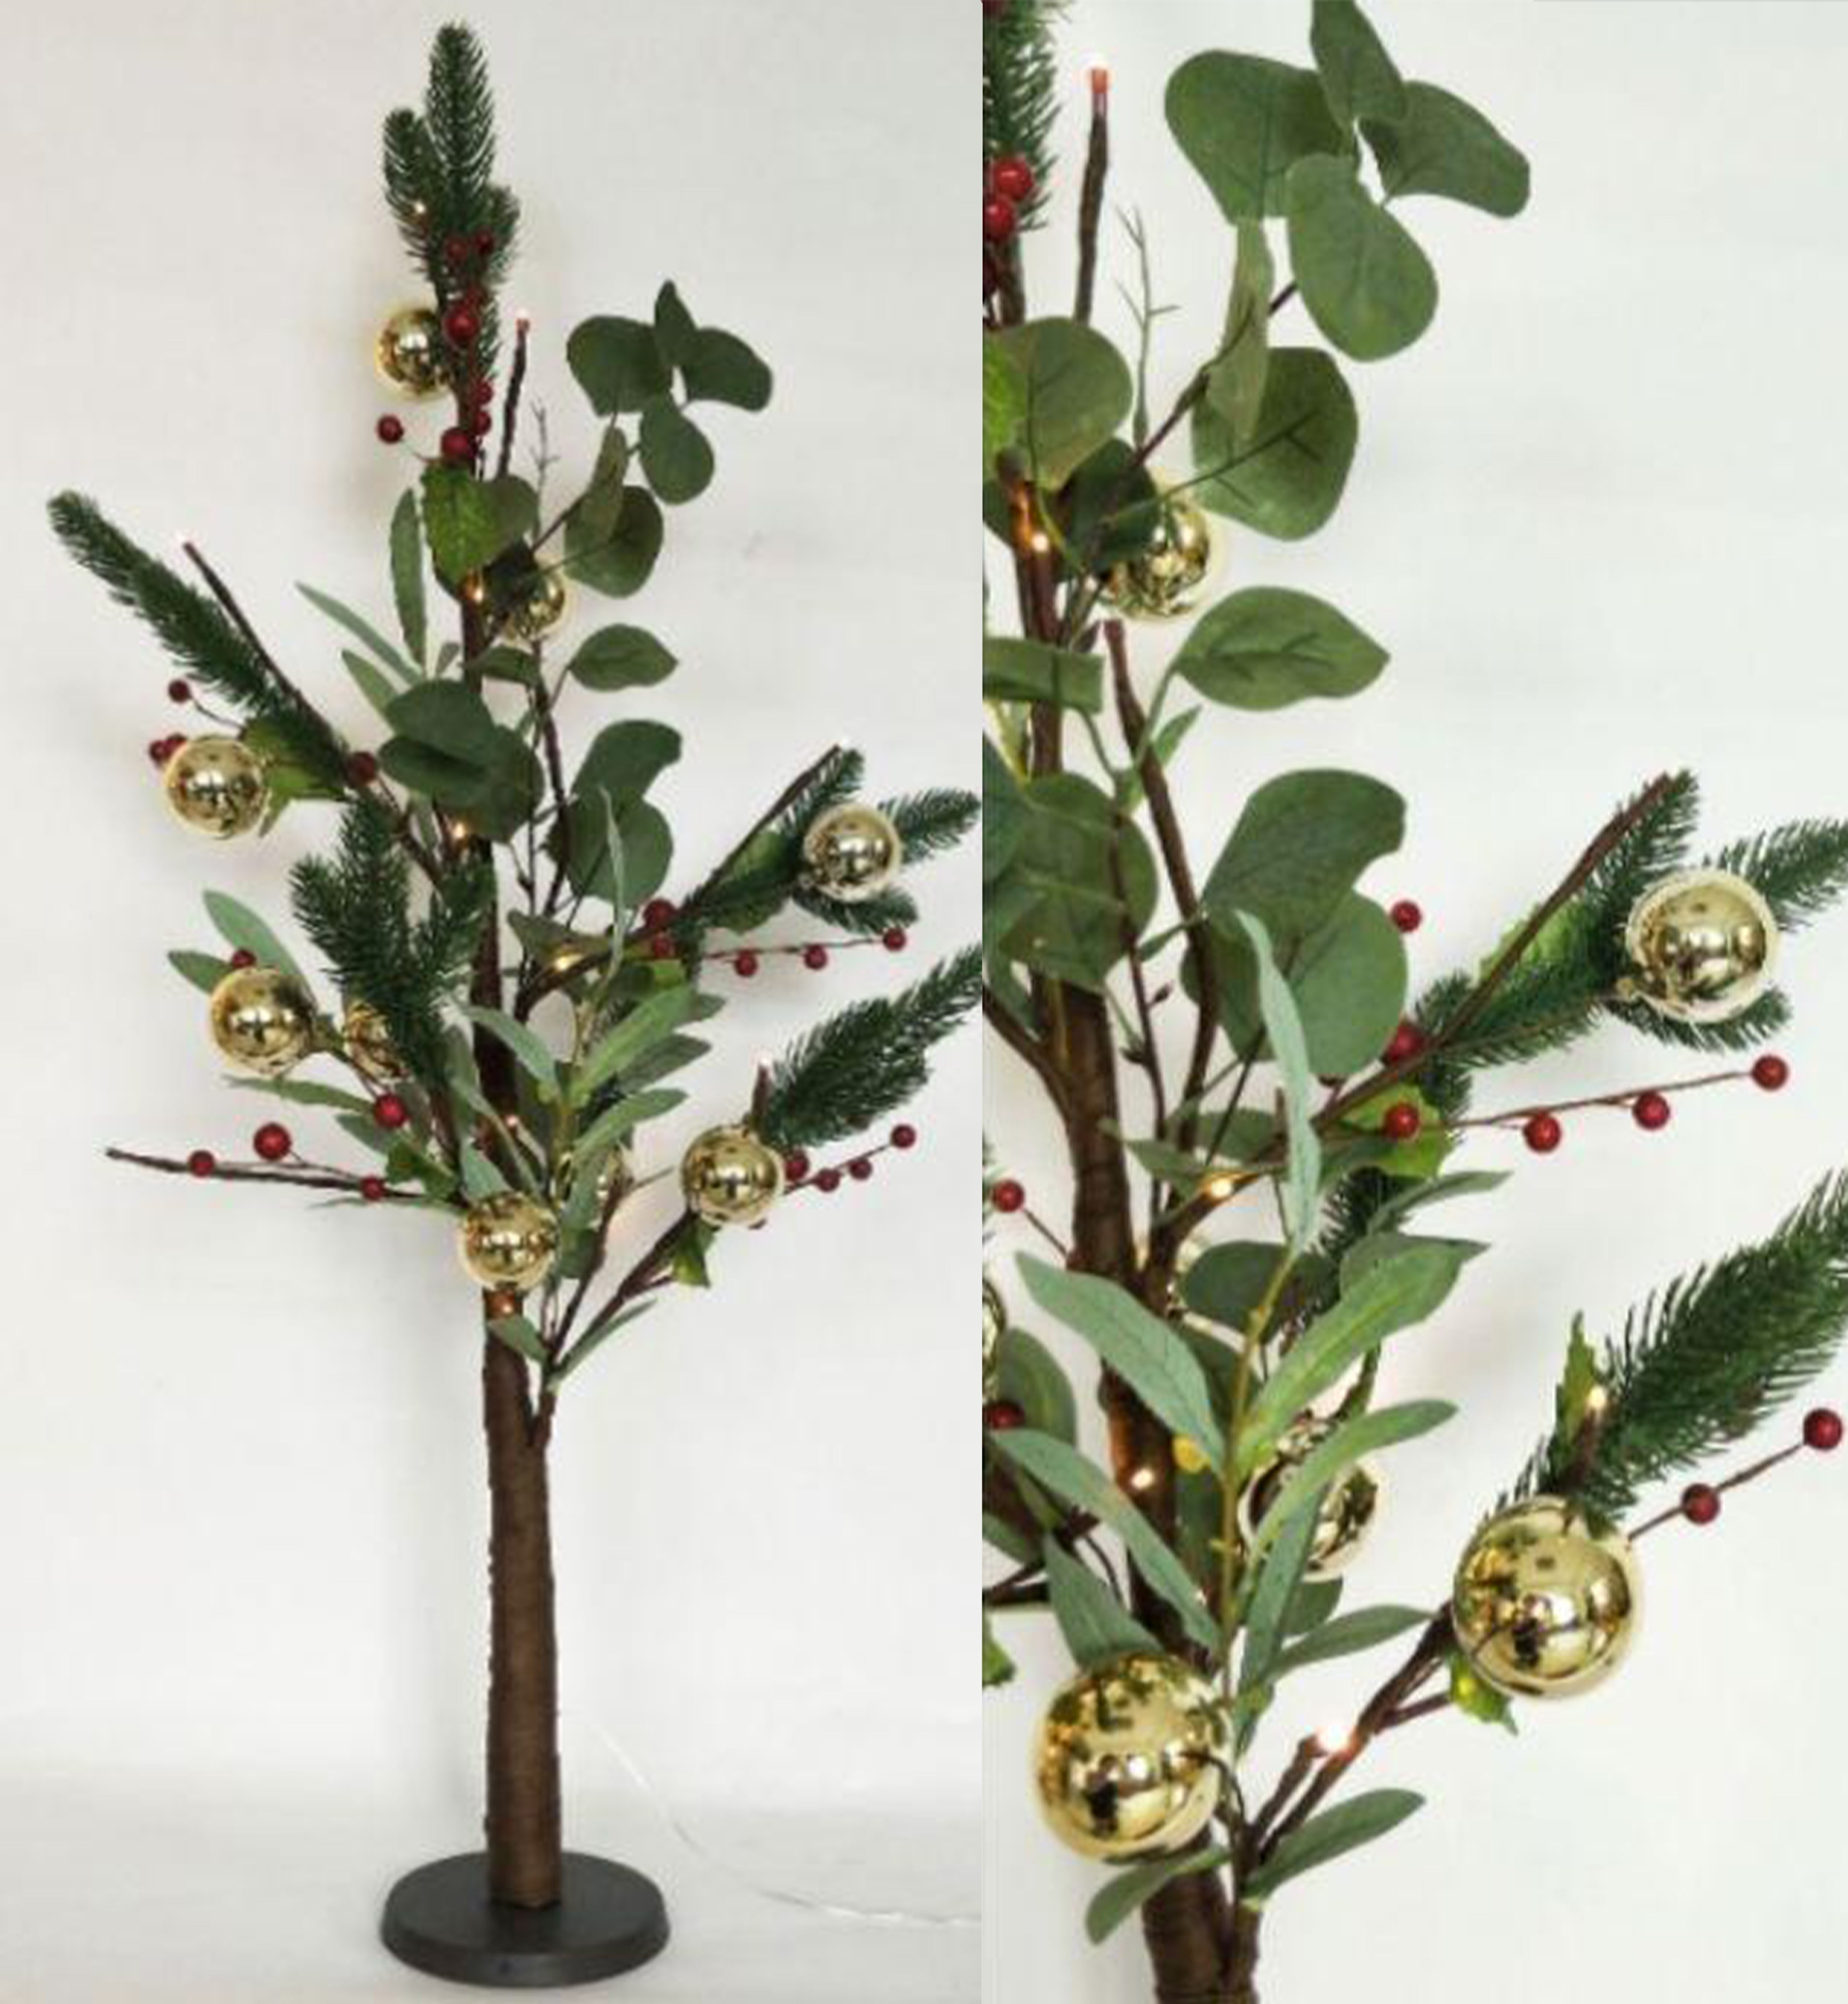 native red berry Christmas tree